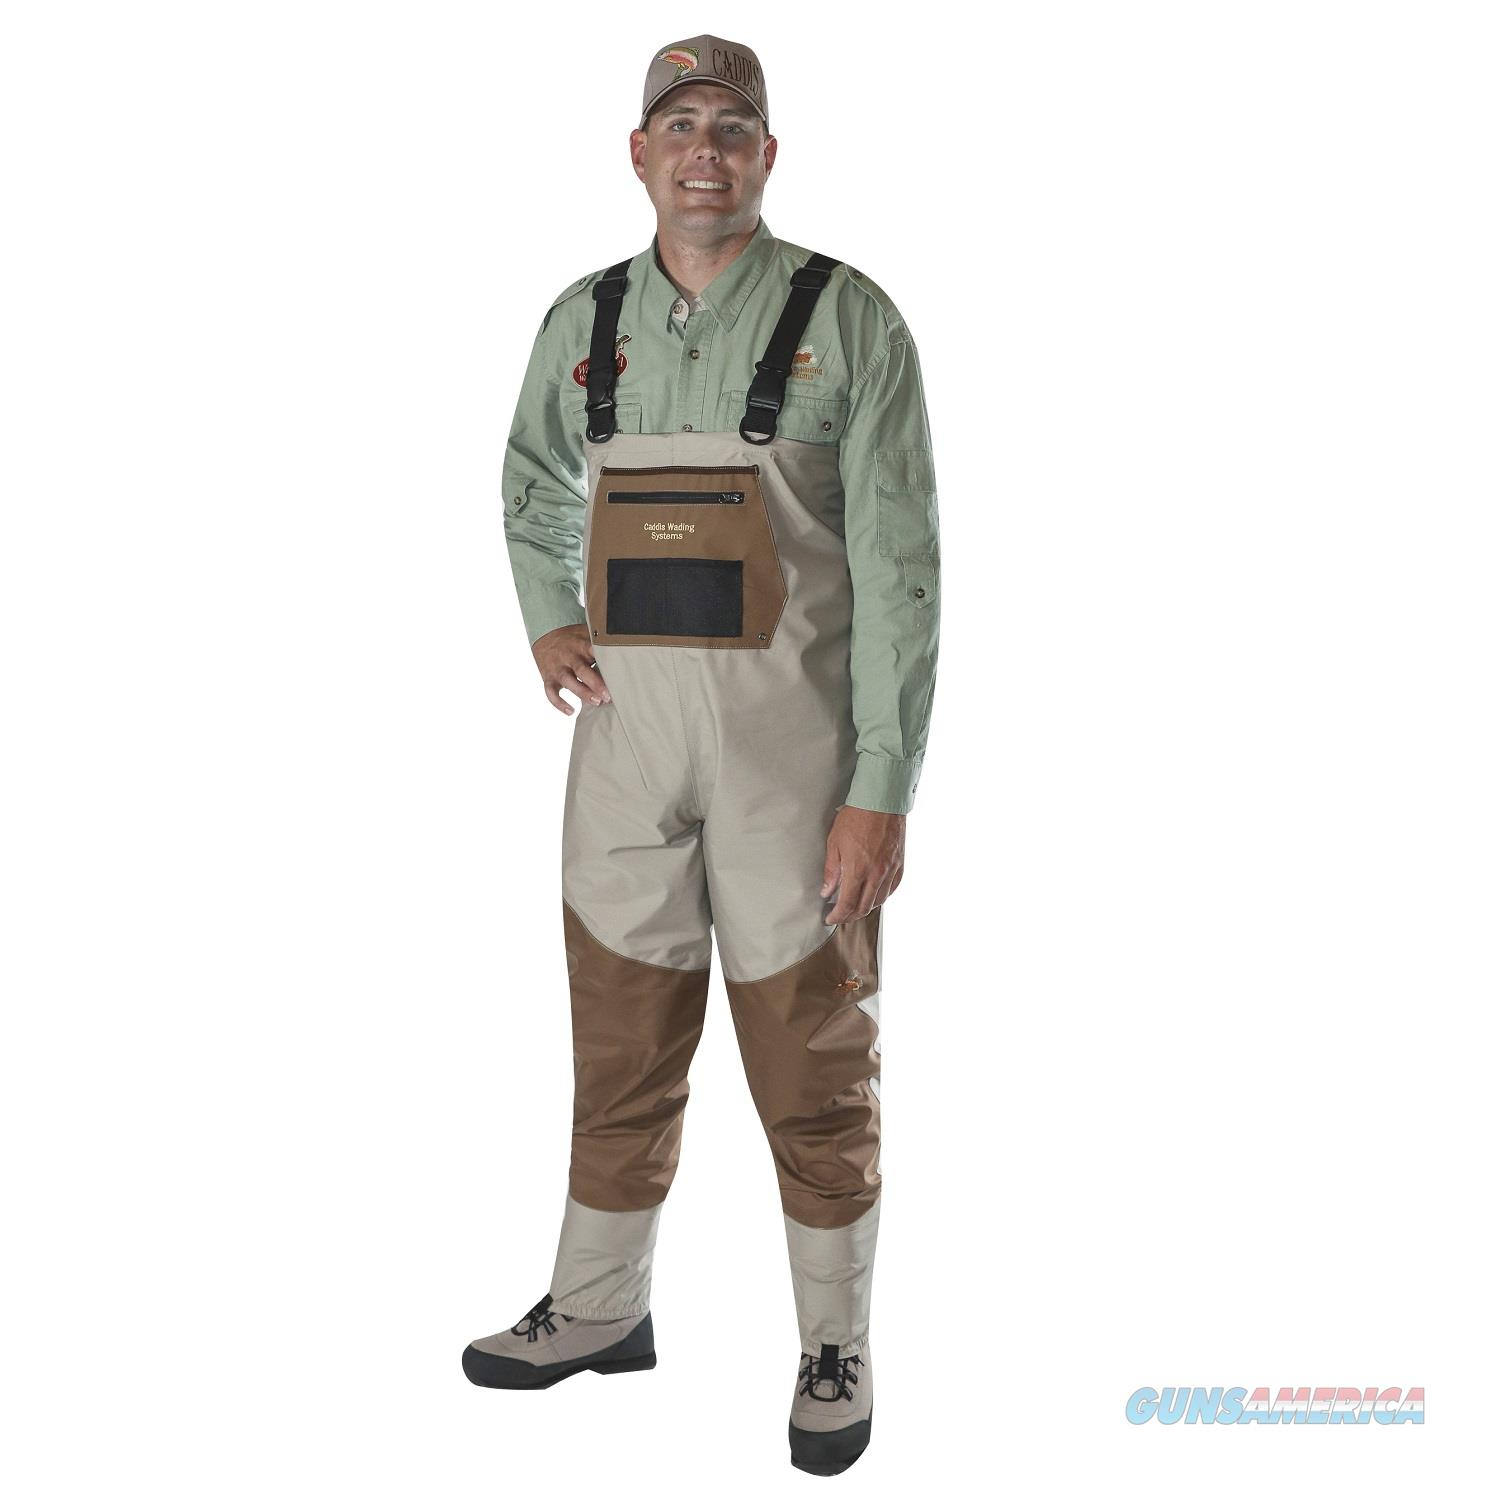 Caddis Men's Deluxe Breathable Stockingfoot Waders - M Stout CA12902WMS  Non-Guns > Fishing/Spearfishing